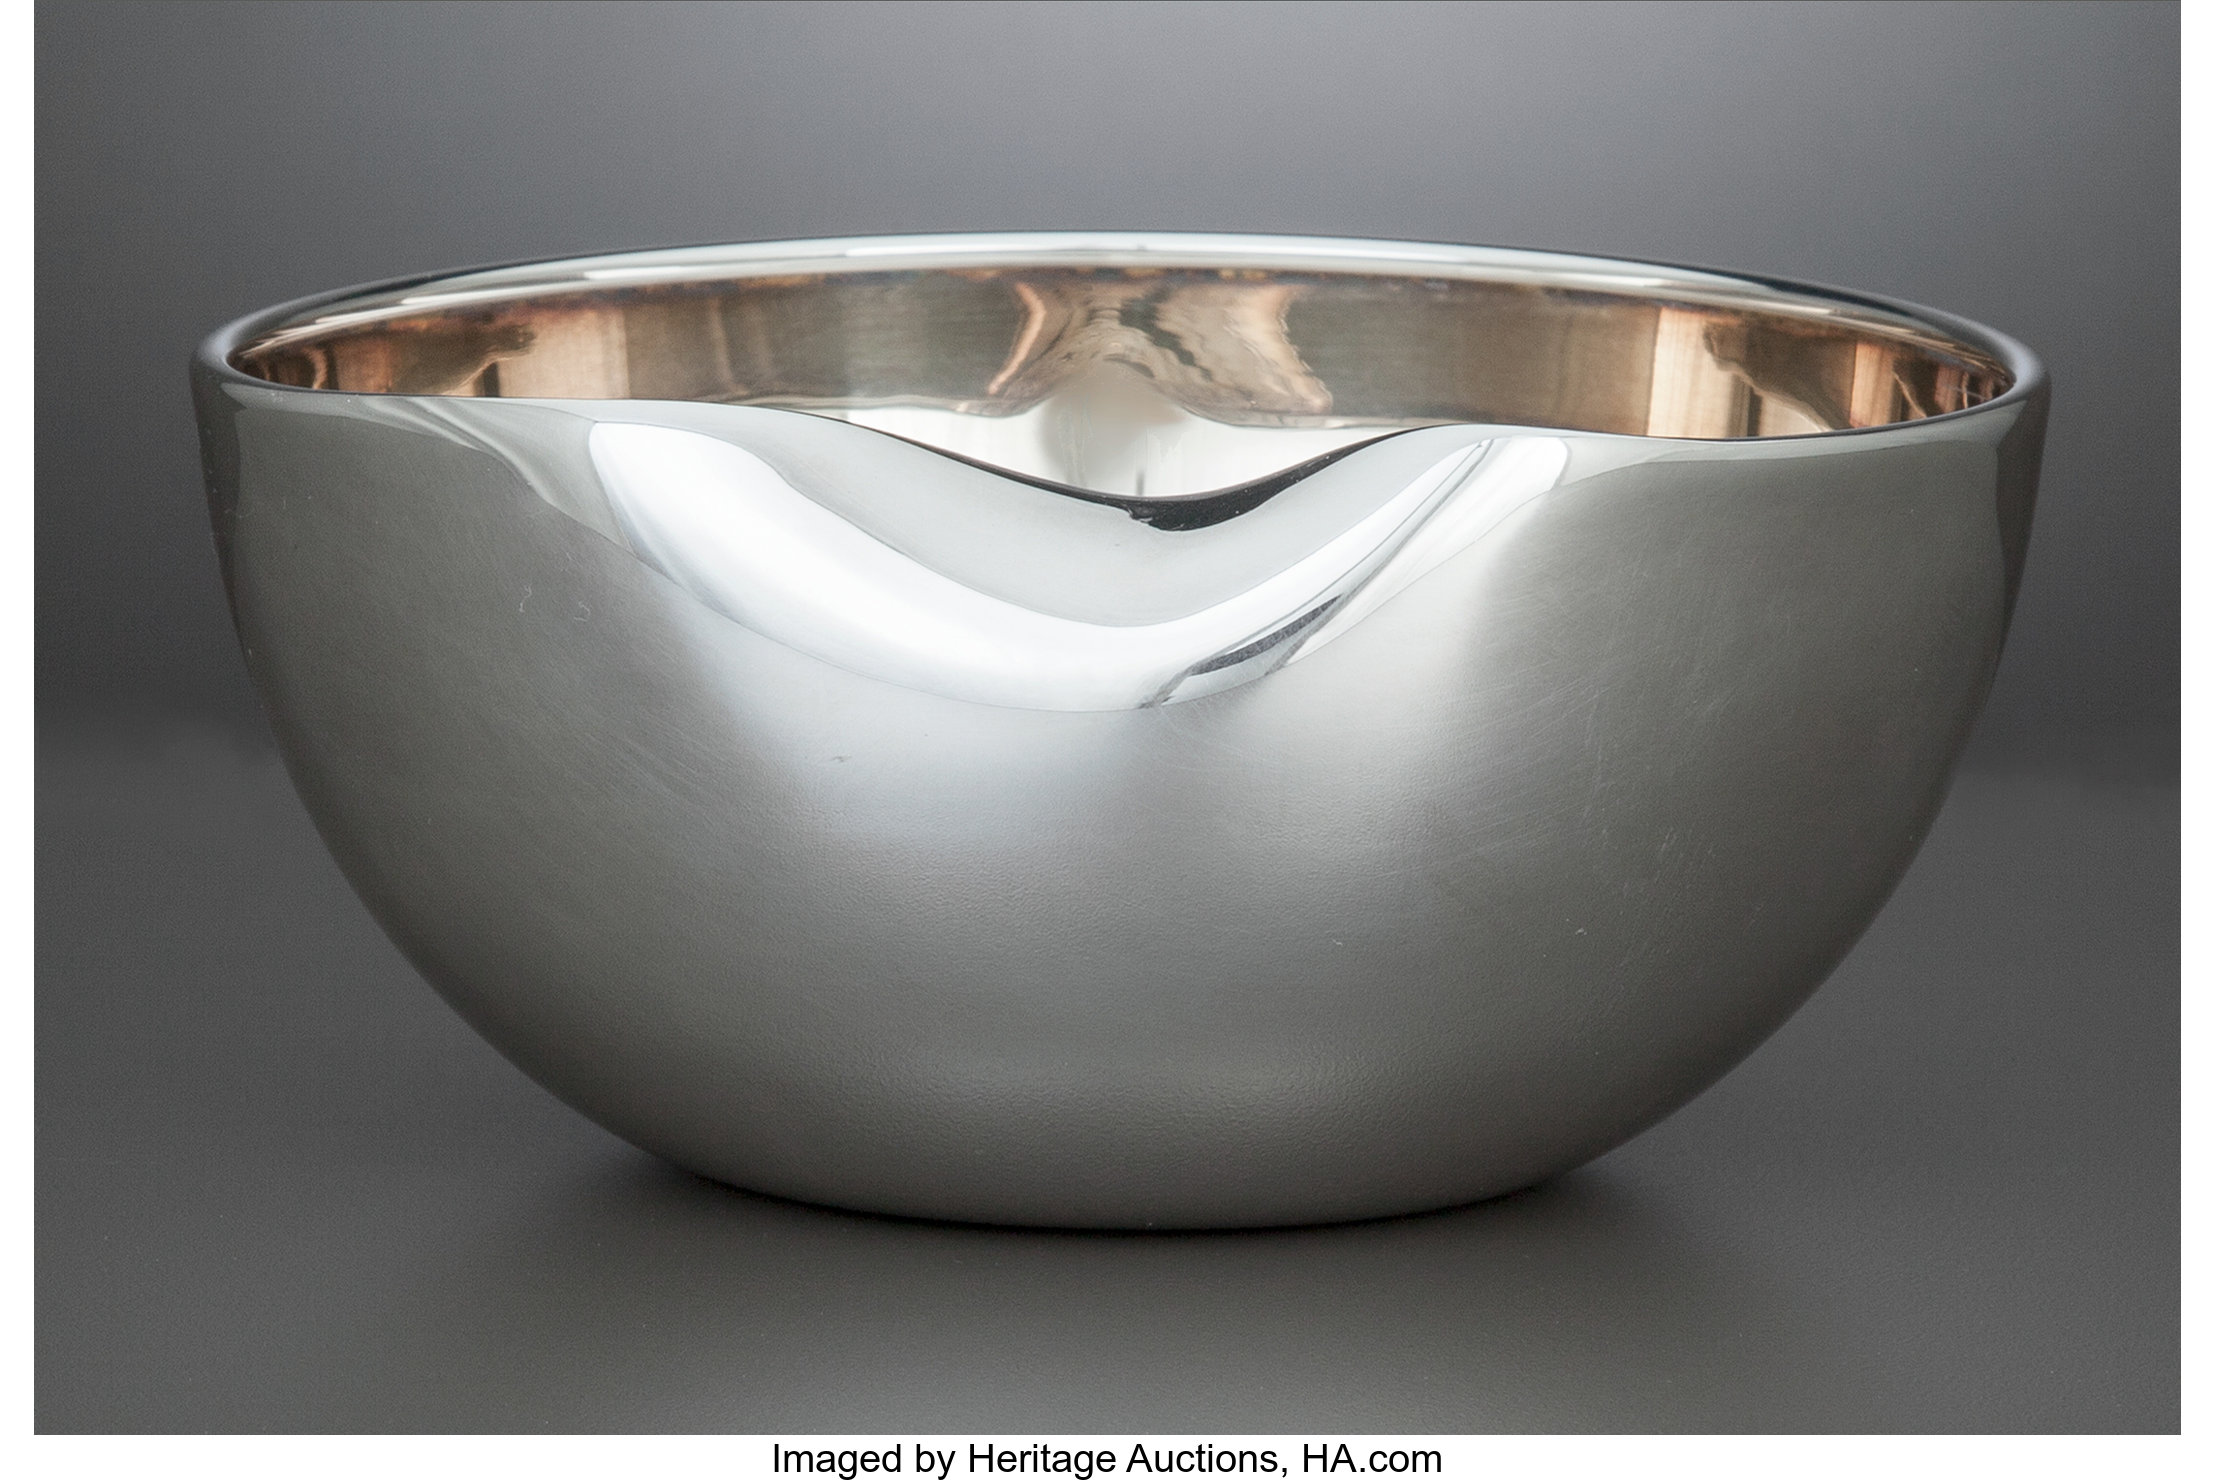 An Elsa Peretti Thumbprint Pattern Silver Bowl For Tiffany Co Lot 75088 Heritage Auctions